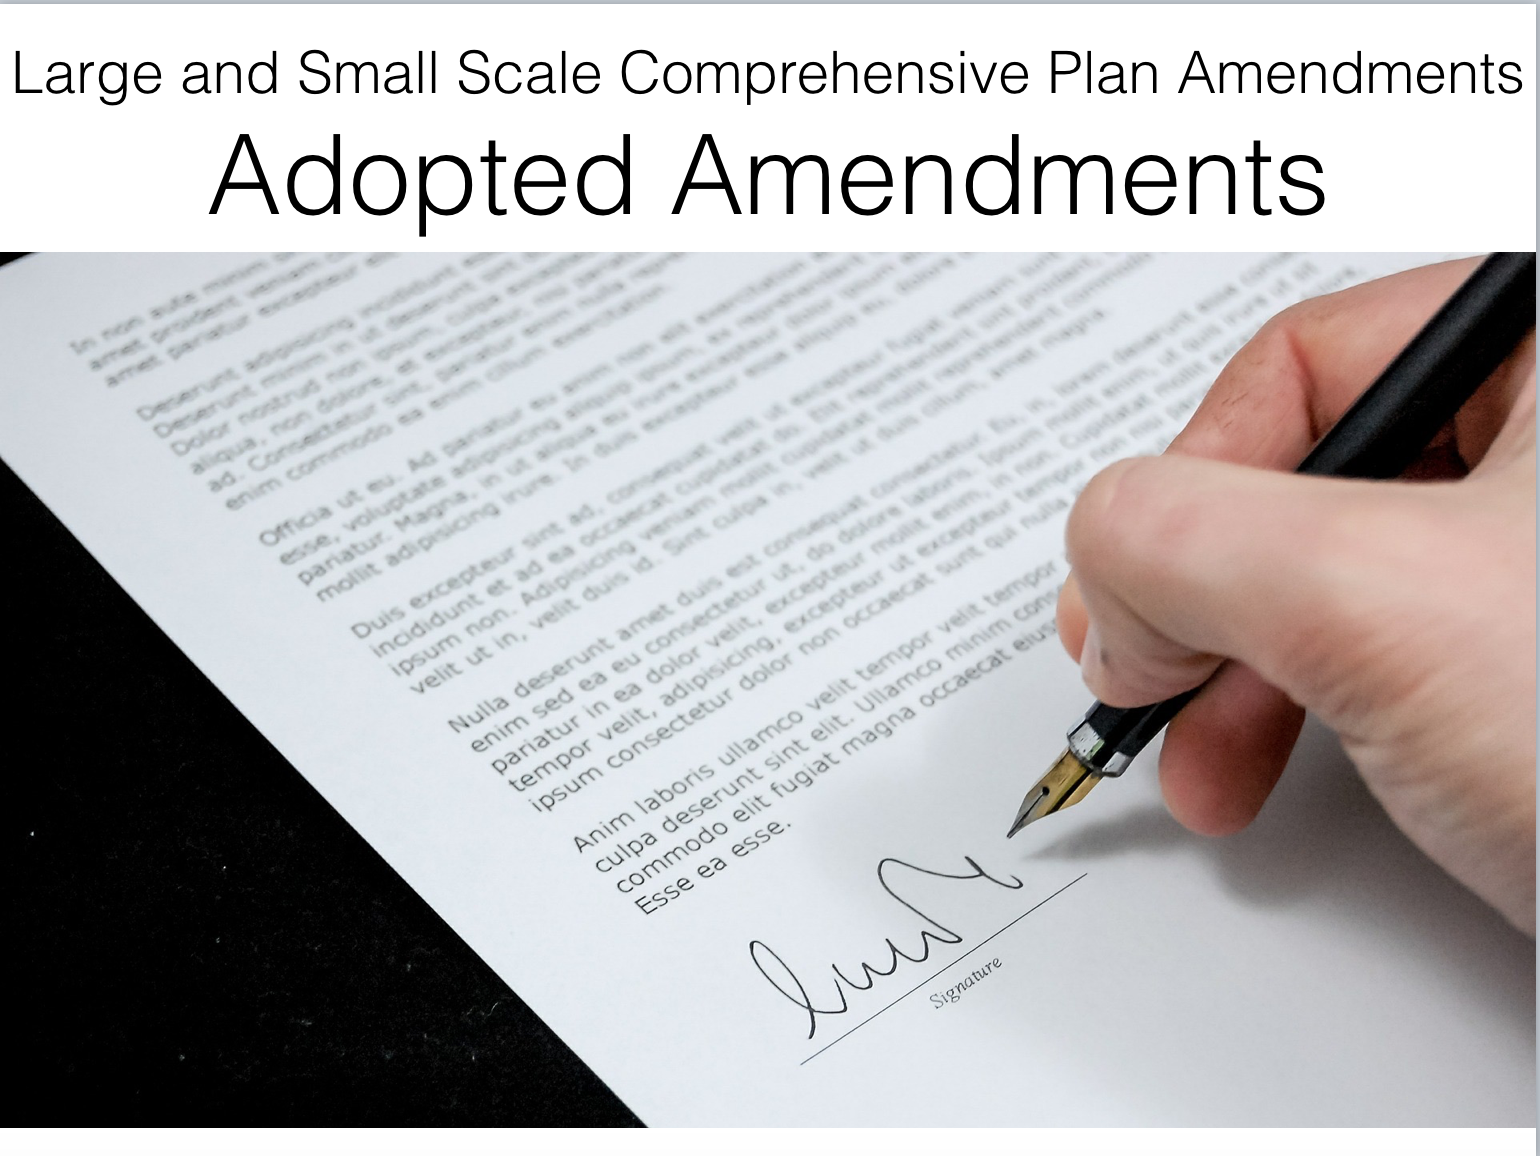 Large and Small Scale Comprehensive Plan Amendments Adopted Amendments